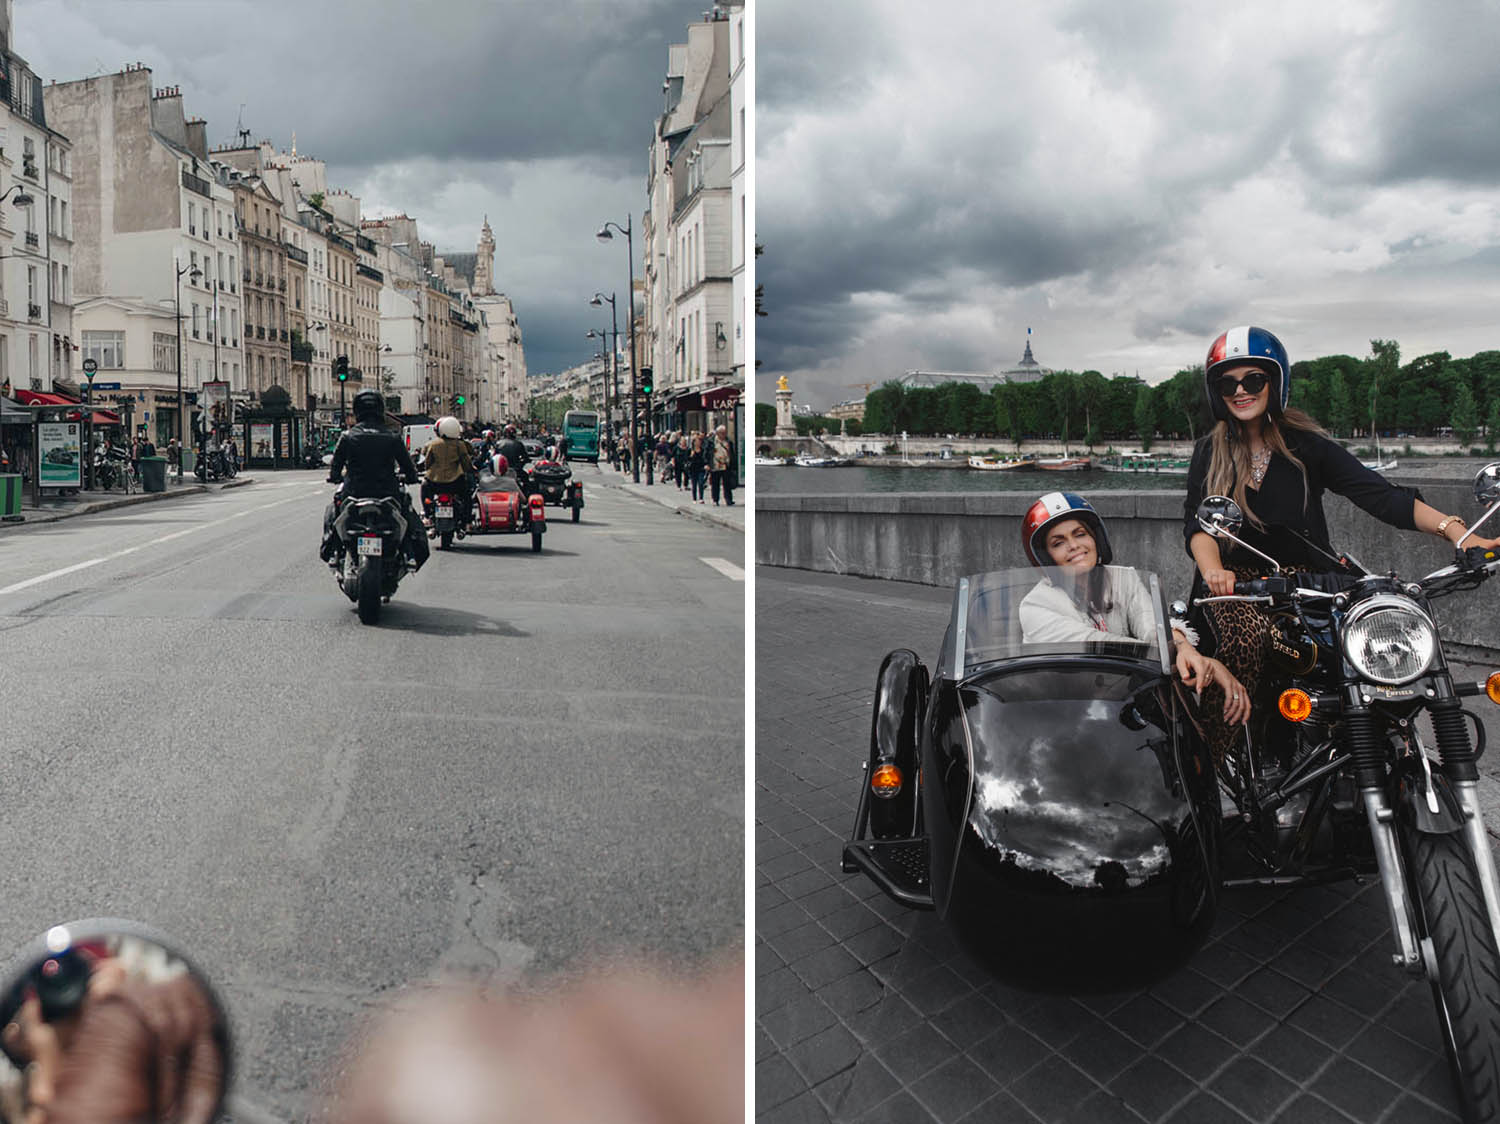 Sightseeing i Paris med Retro Tour